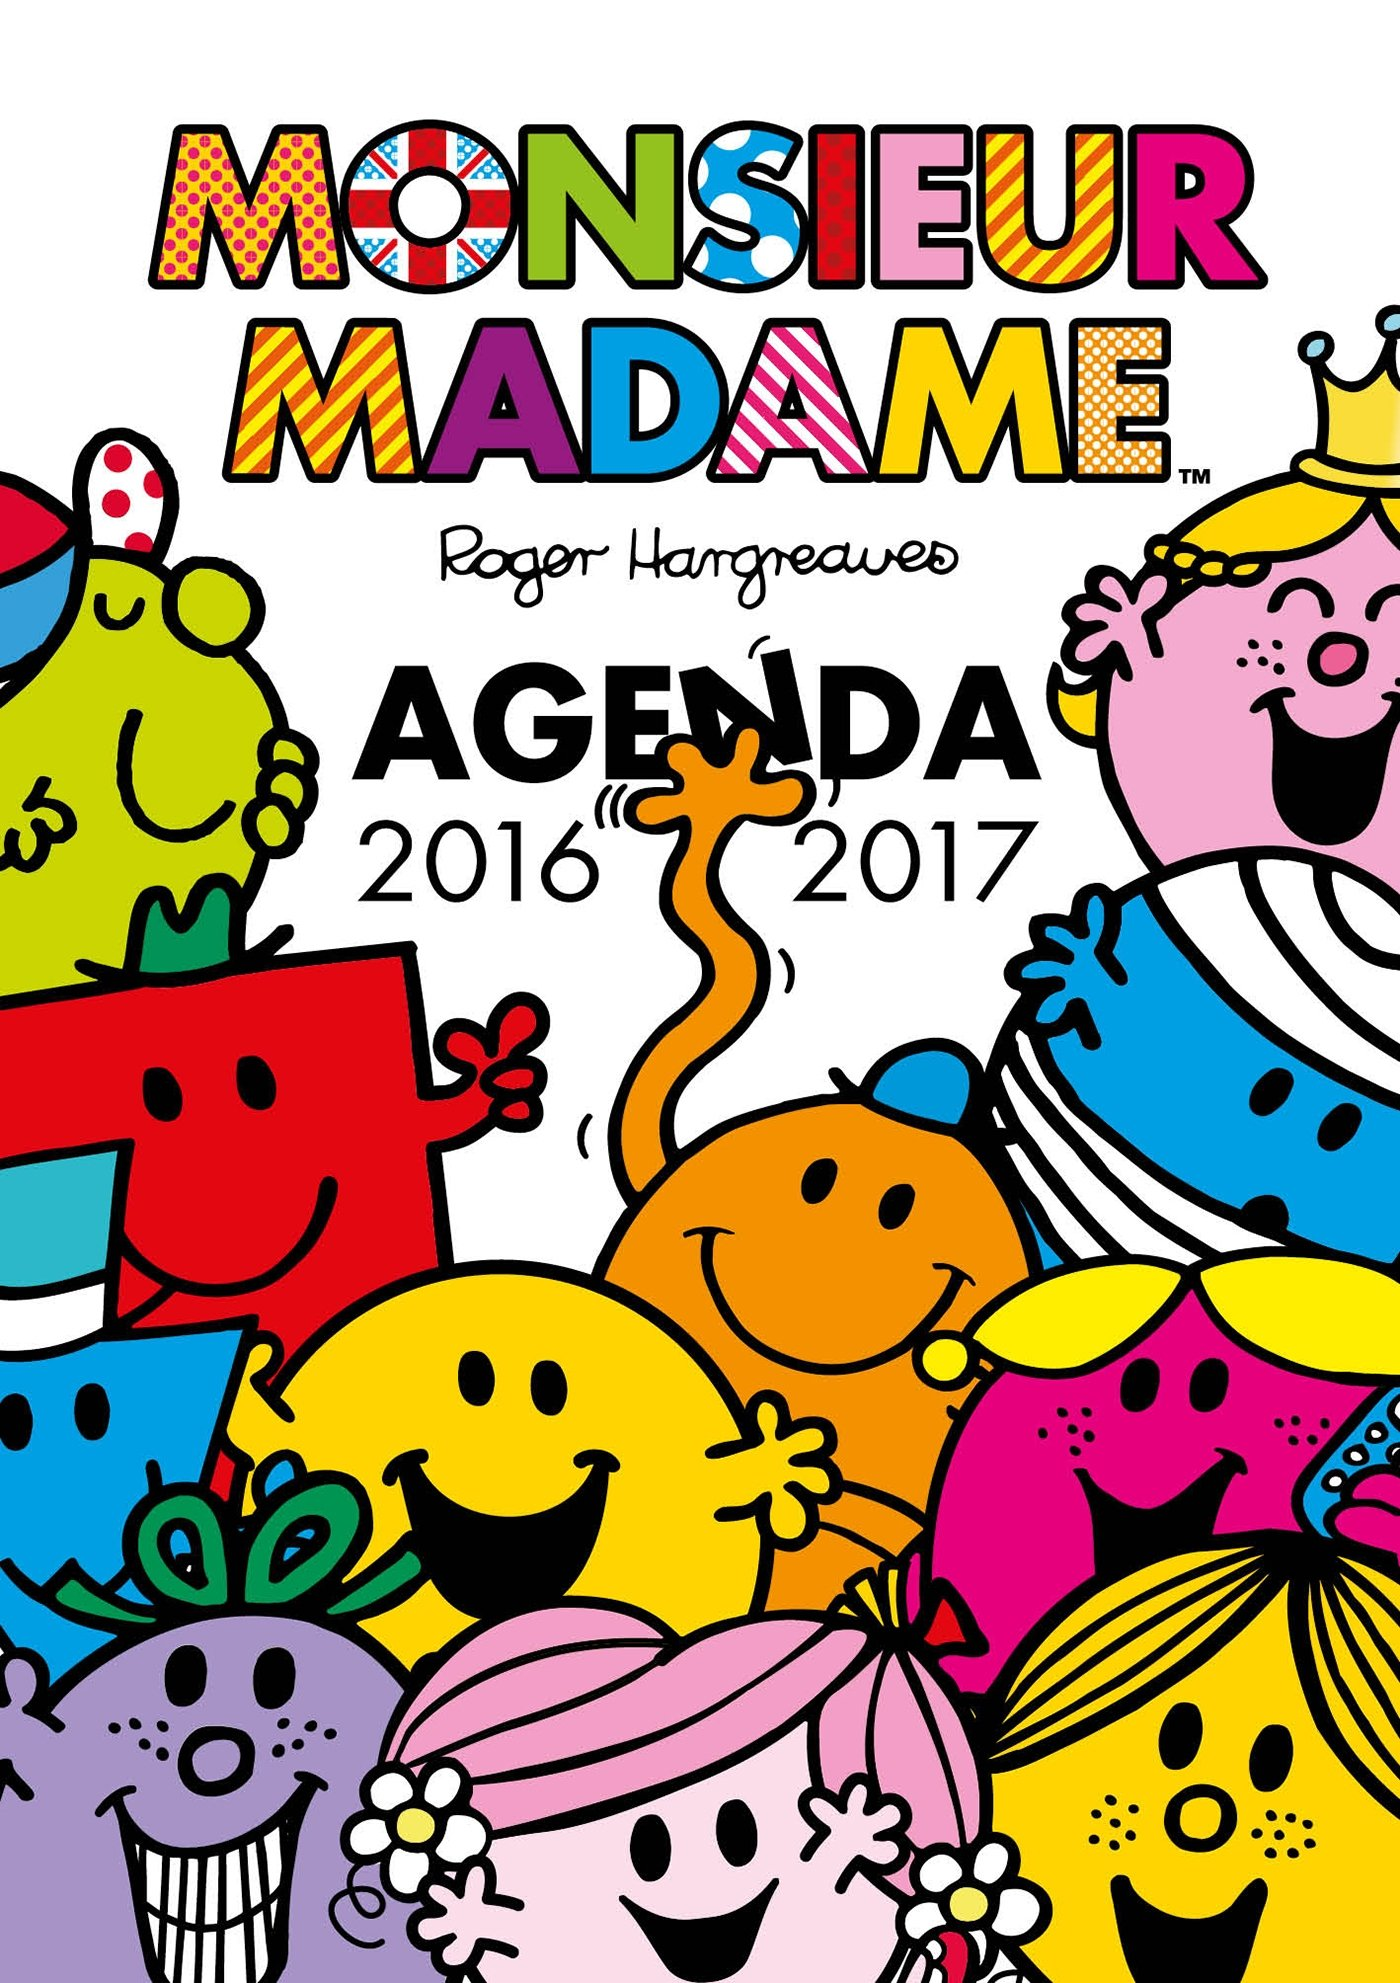 Monsieur Madame - Agenda 2016-2017: Amazon.es: Roger ...